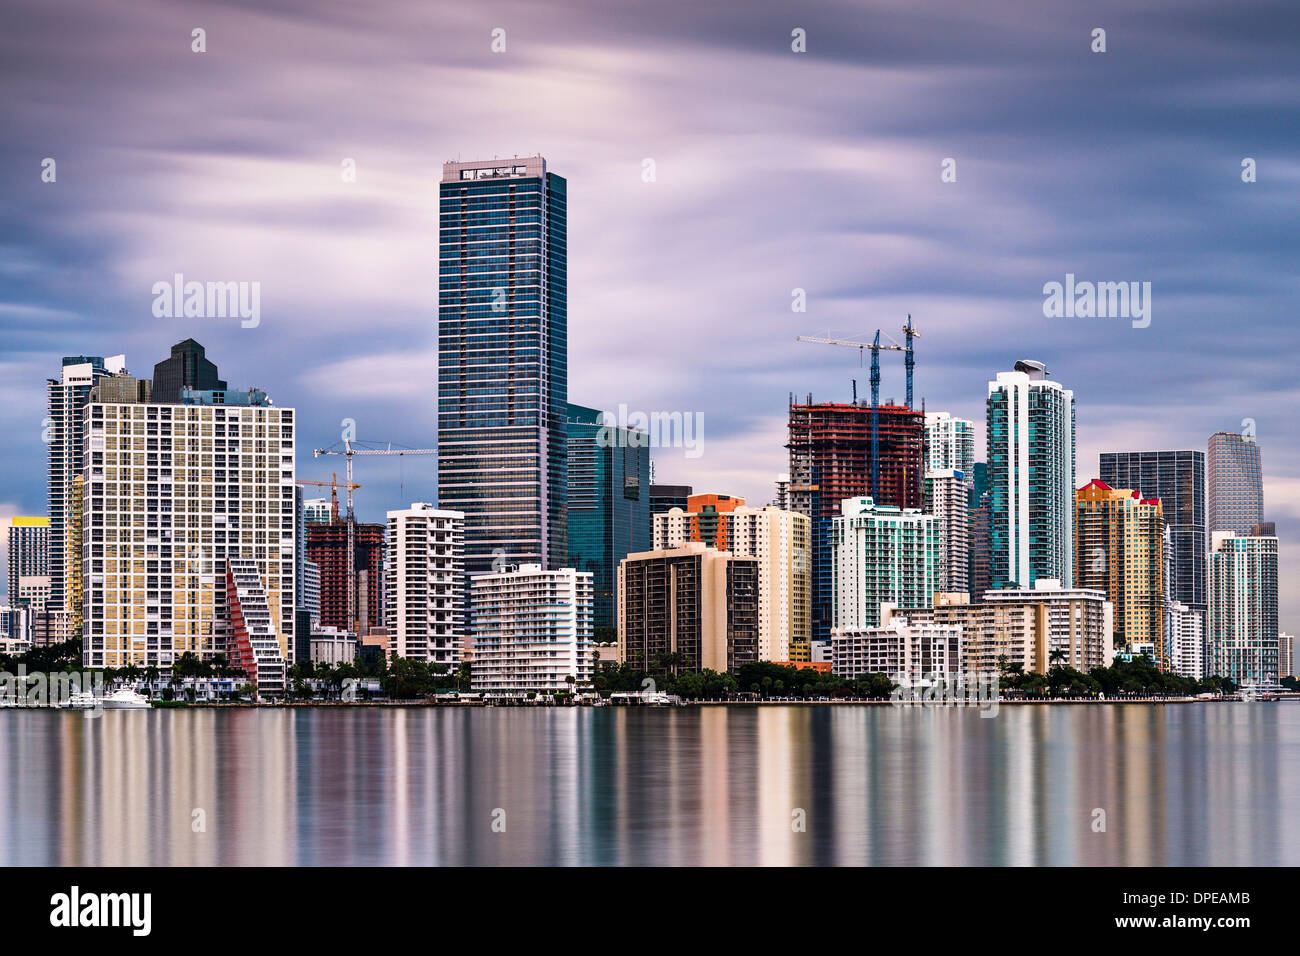 Skyline von Miami, Florida, USA. Stockbild